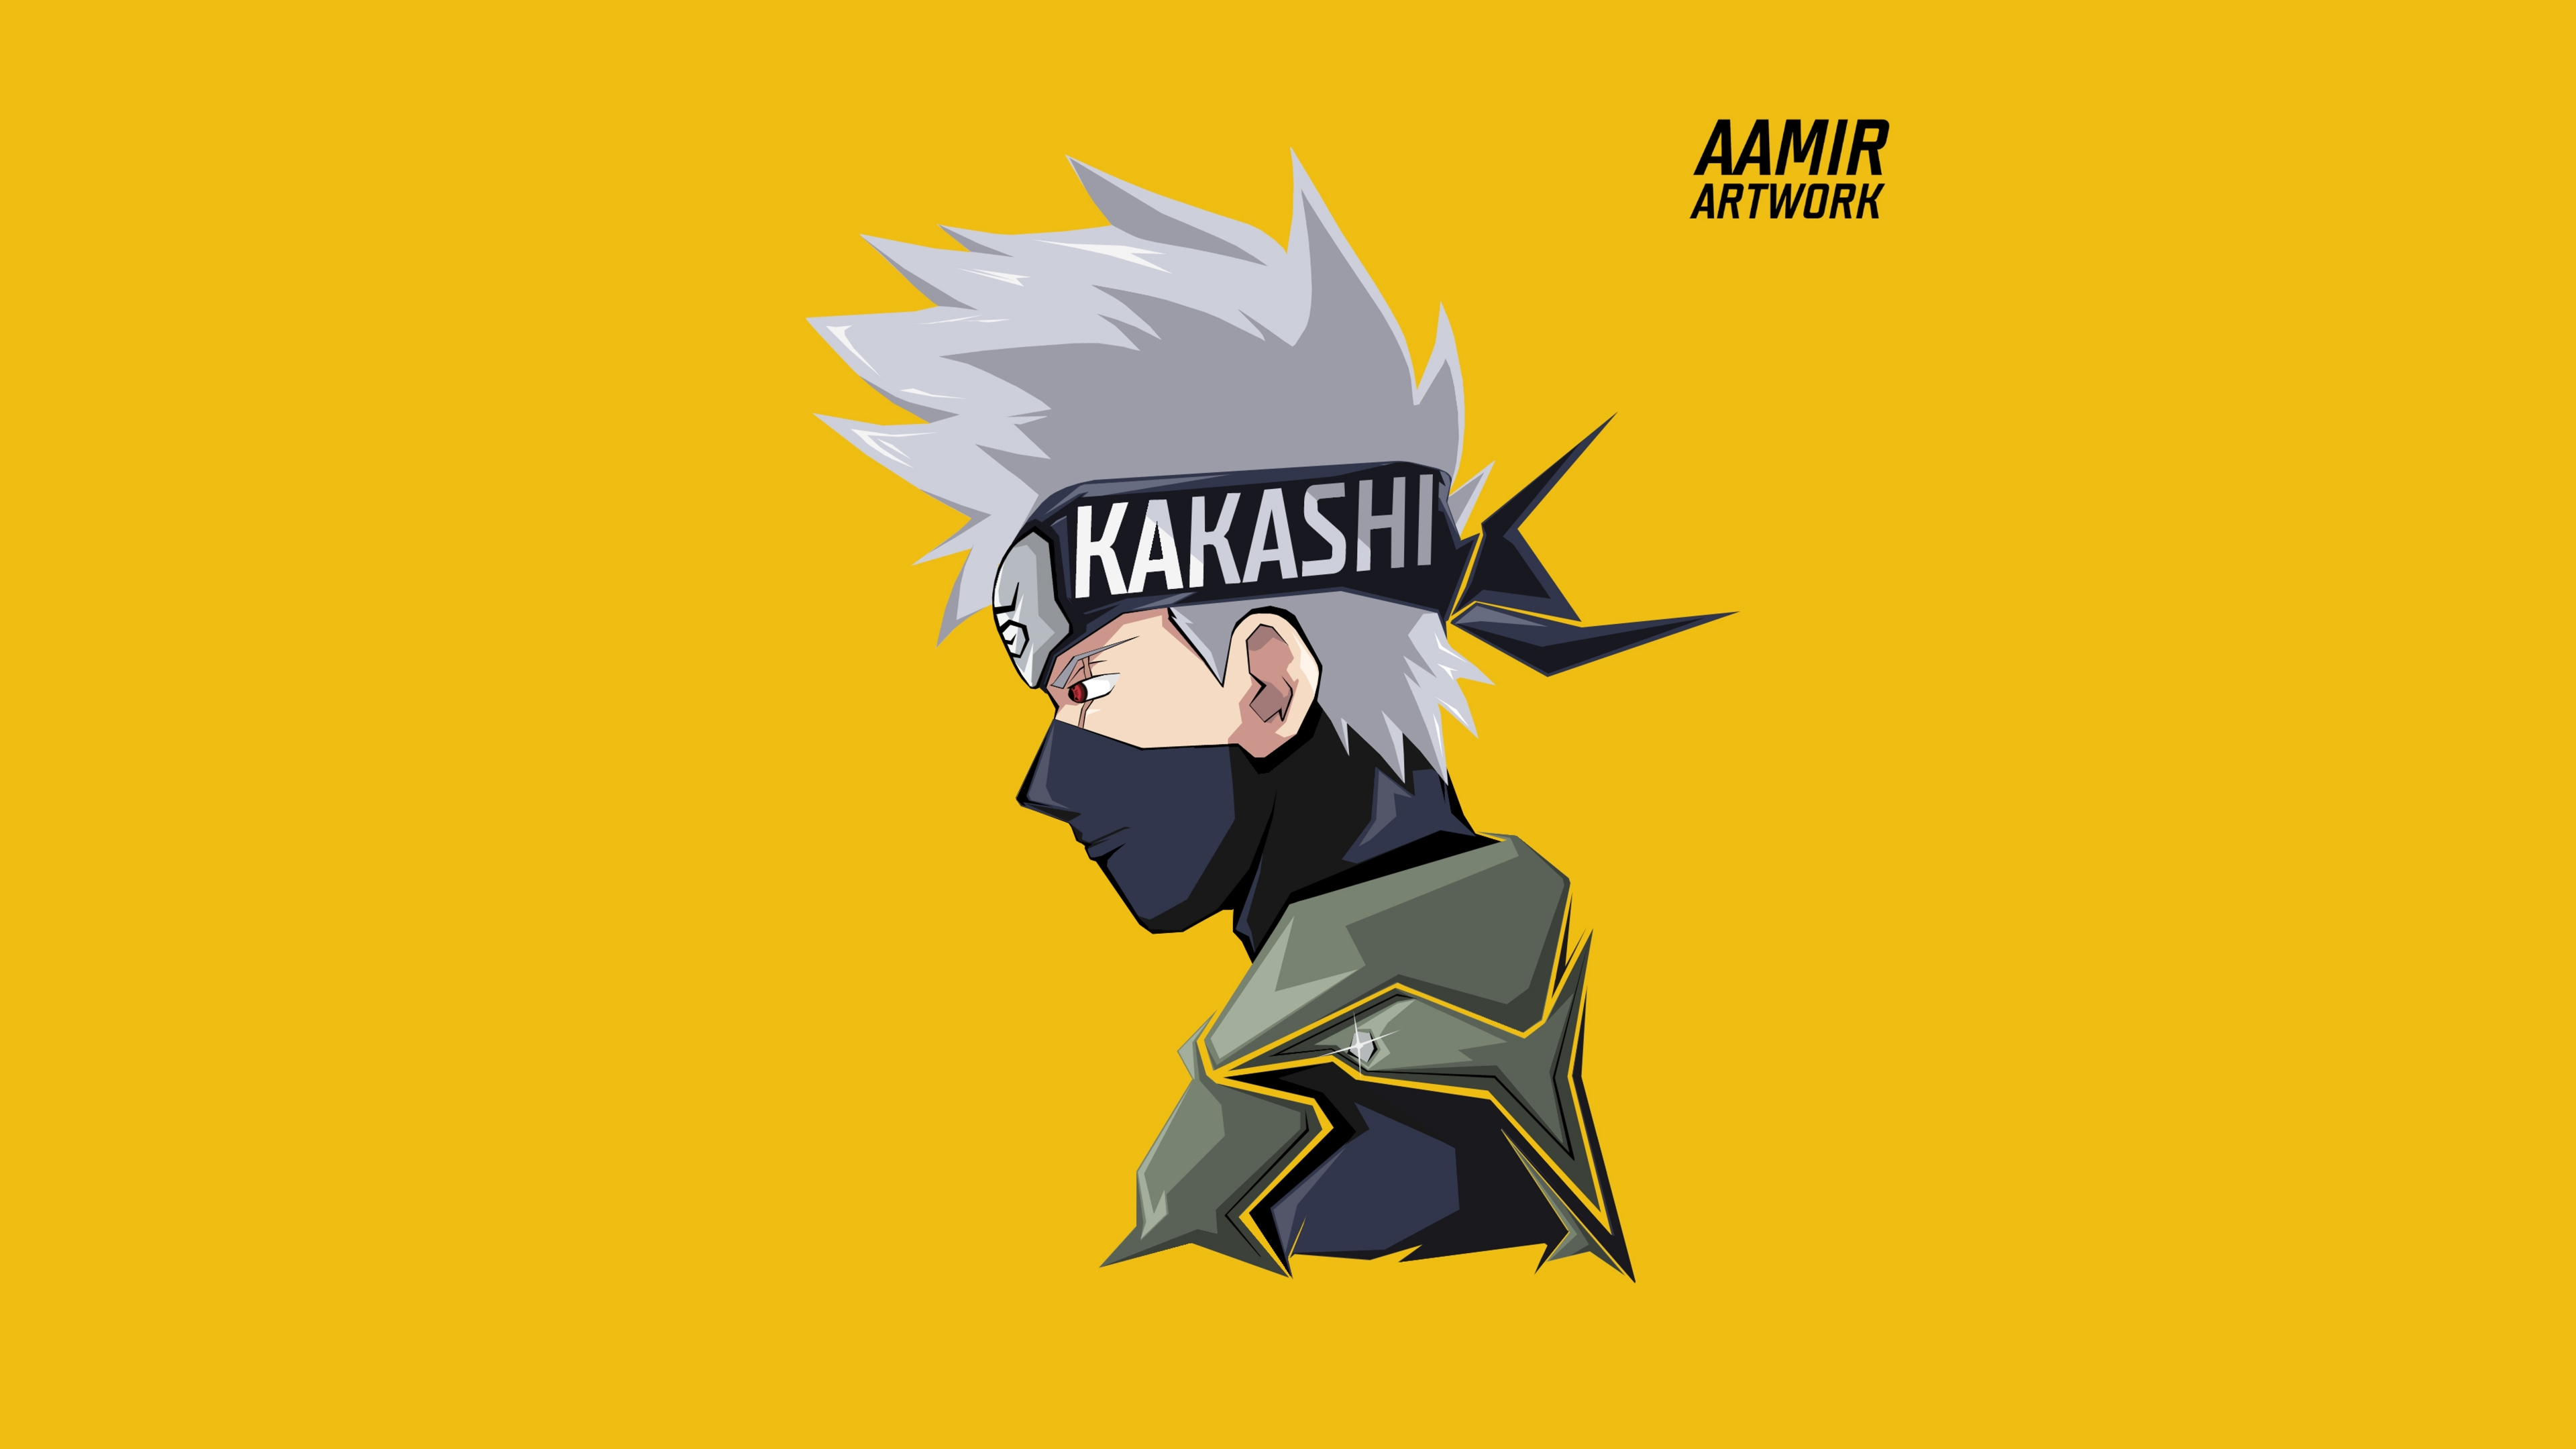 Kakashi Hatake Illustration Anime Wallpaper 8k Ultra Hd Id 3631